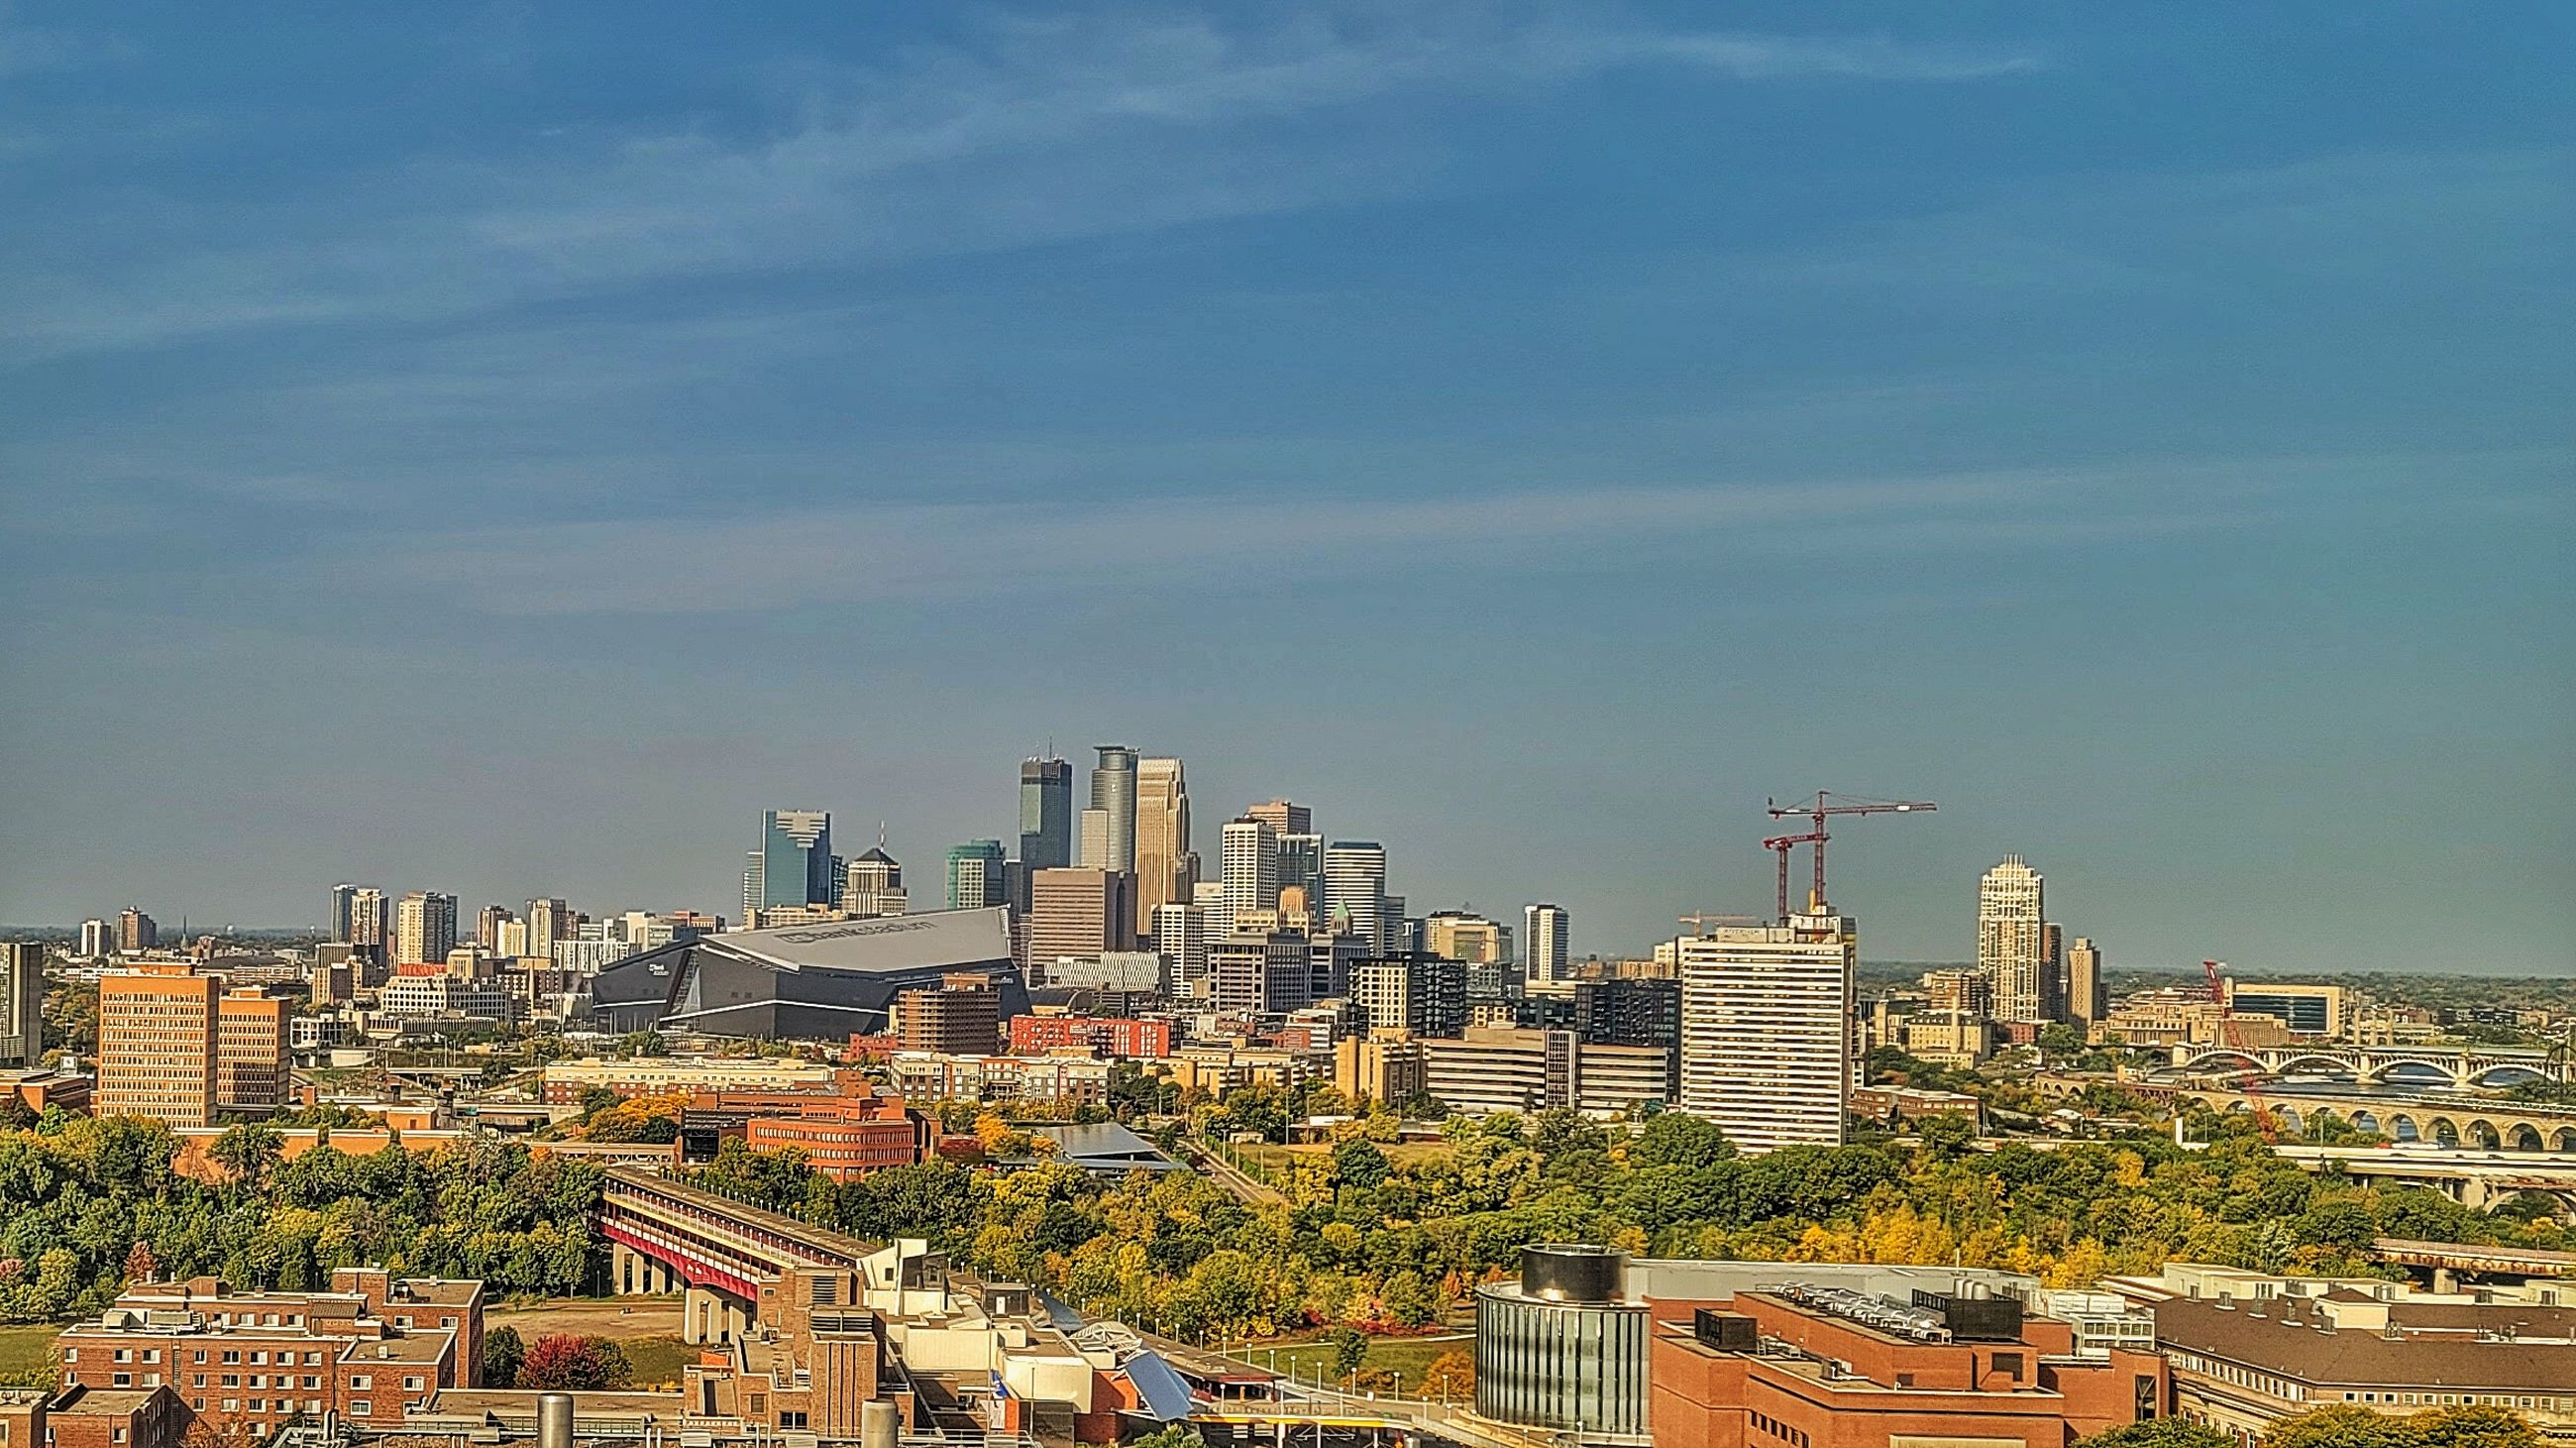 architecture, city, building exterior, built structure, building, cityscape, skyline, sky, horizon, urban area, office building exterior, urban skyline, landscape, skyscraper, residential district, metropolitan area, downtown, nature, high angle view, travel destinations, no people, city life, metropolis, outdoors, aerial photography, residential area, cloud, tower, downtown district, landmark, travel, neighbourhood, day, office, tower block, development, dusk